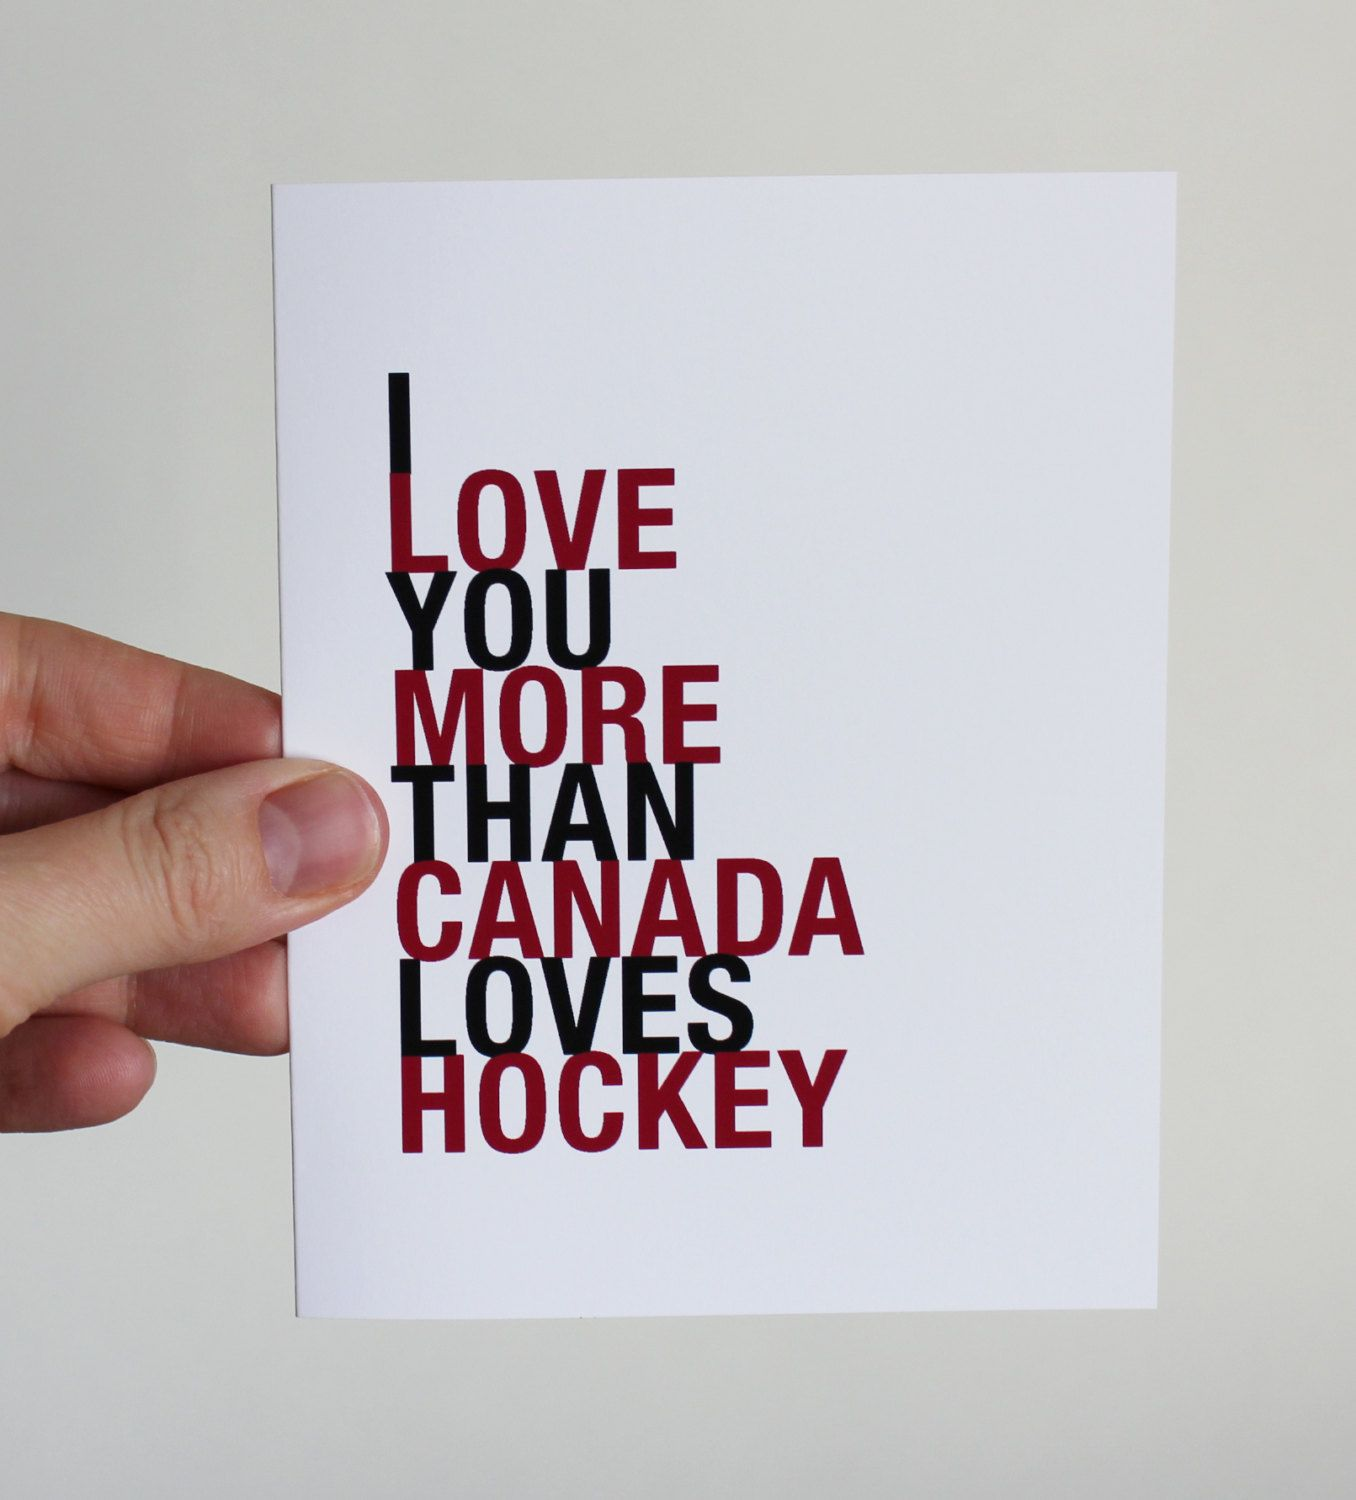 Canada hockey card i love you more than canada loves hockey red canada hockey card i love you more than canada loves hockey red and black a2 size greeting card free us shipping bookmarktalkfo Image collections